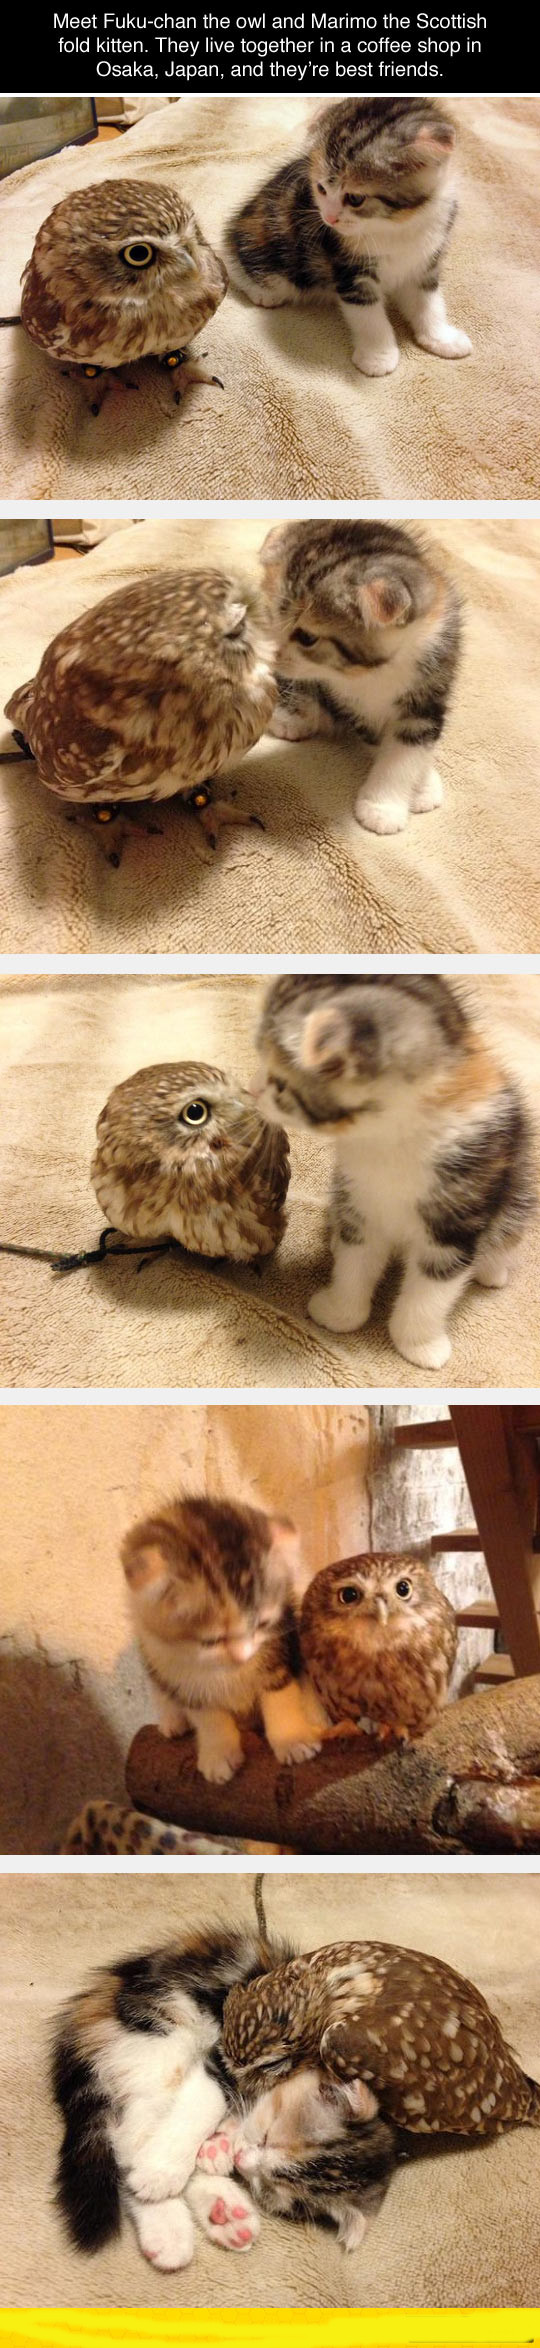 funny-kitten-owl-friends-japan